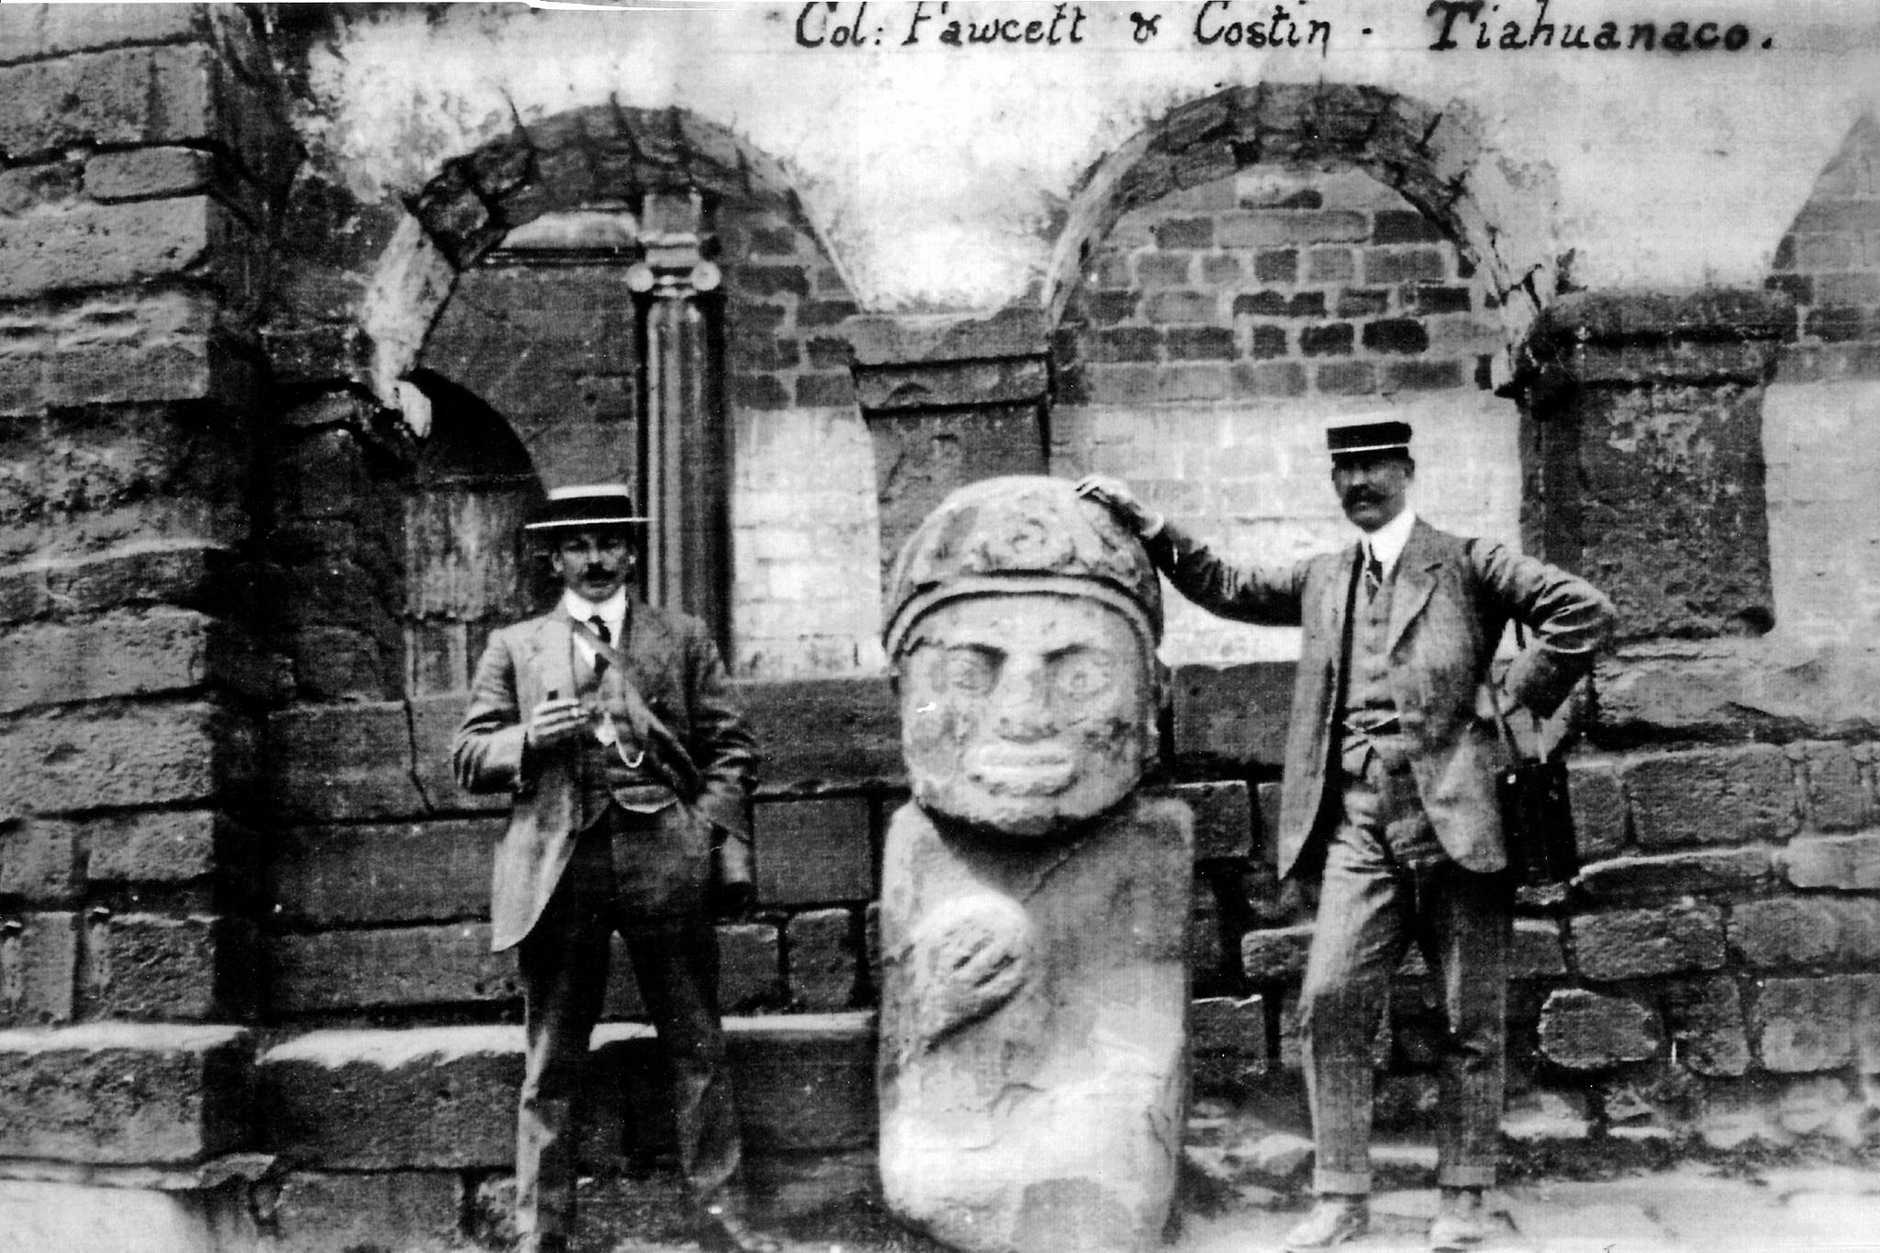 Costin and Fawcett: Henry Costin, left and Percy Fawcett with an ancient statue at Tihuanaco.